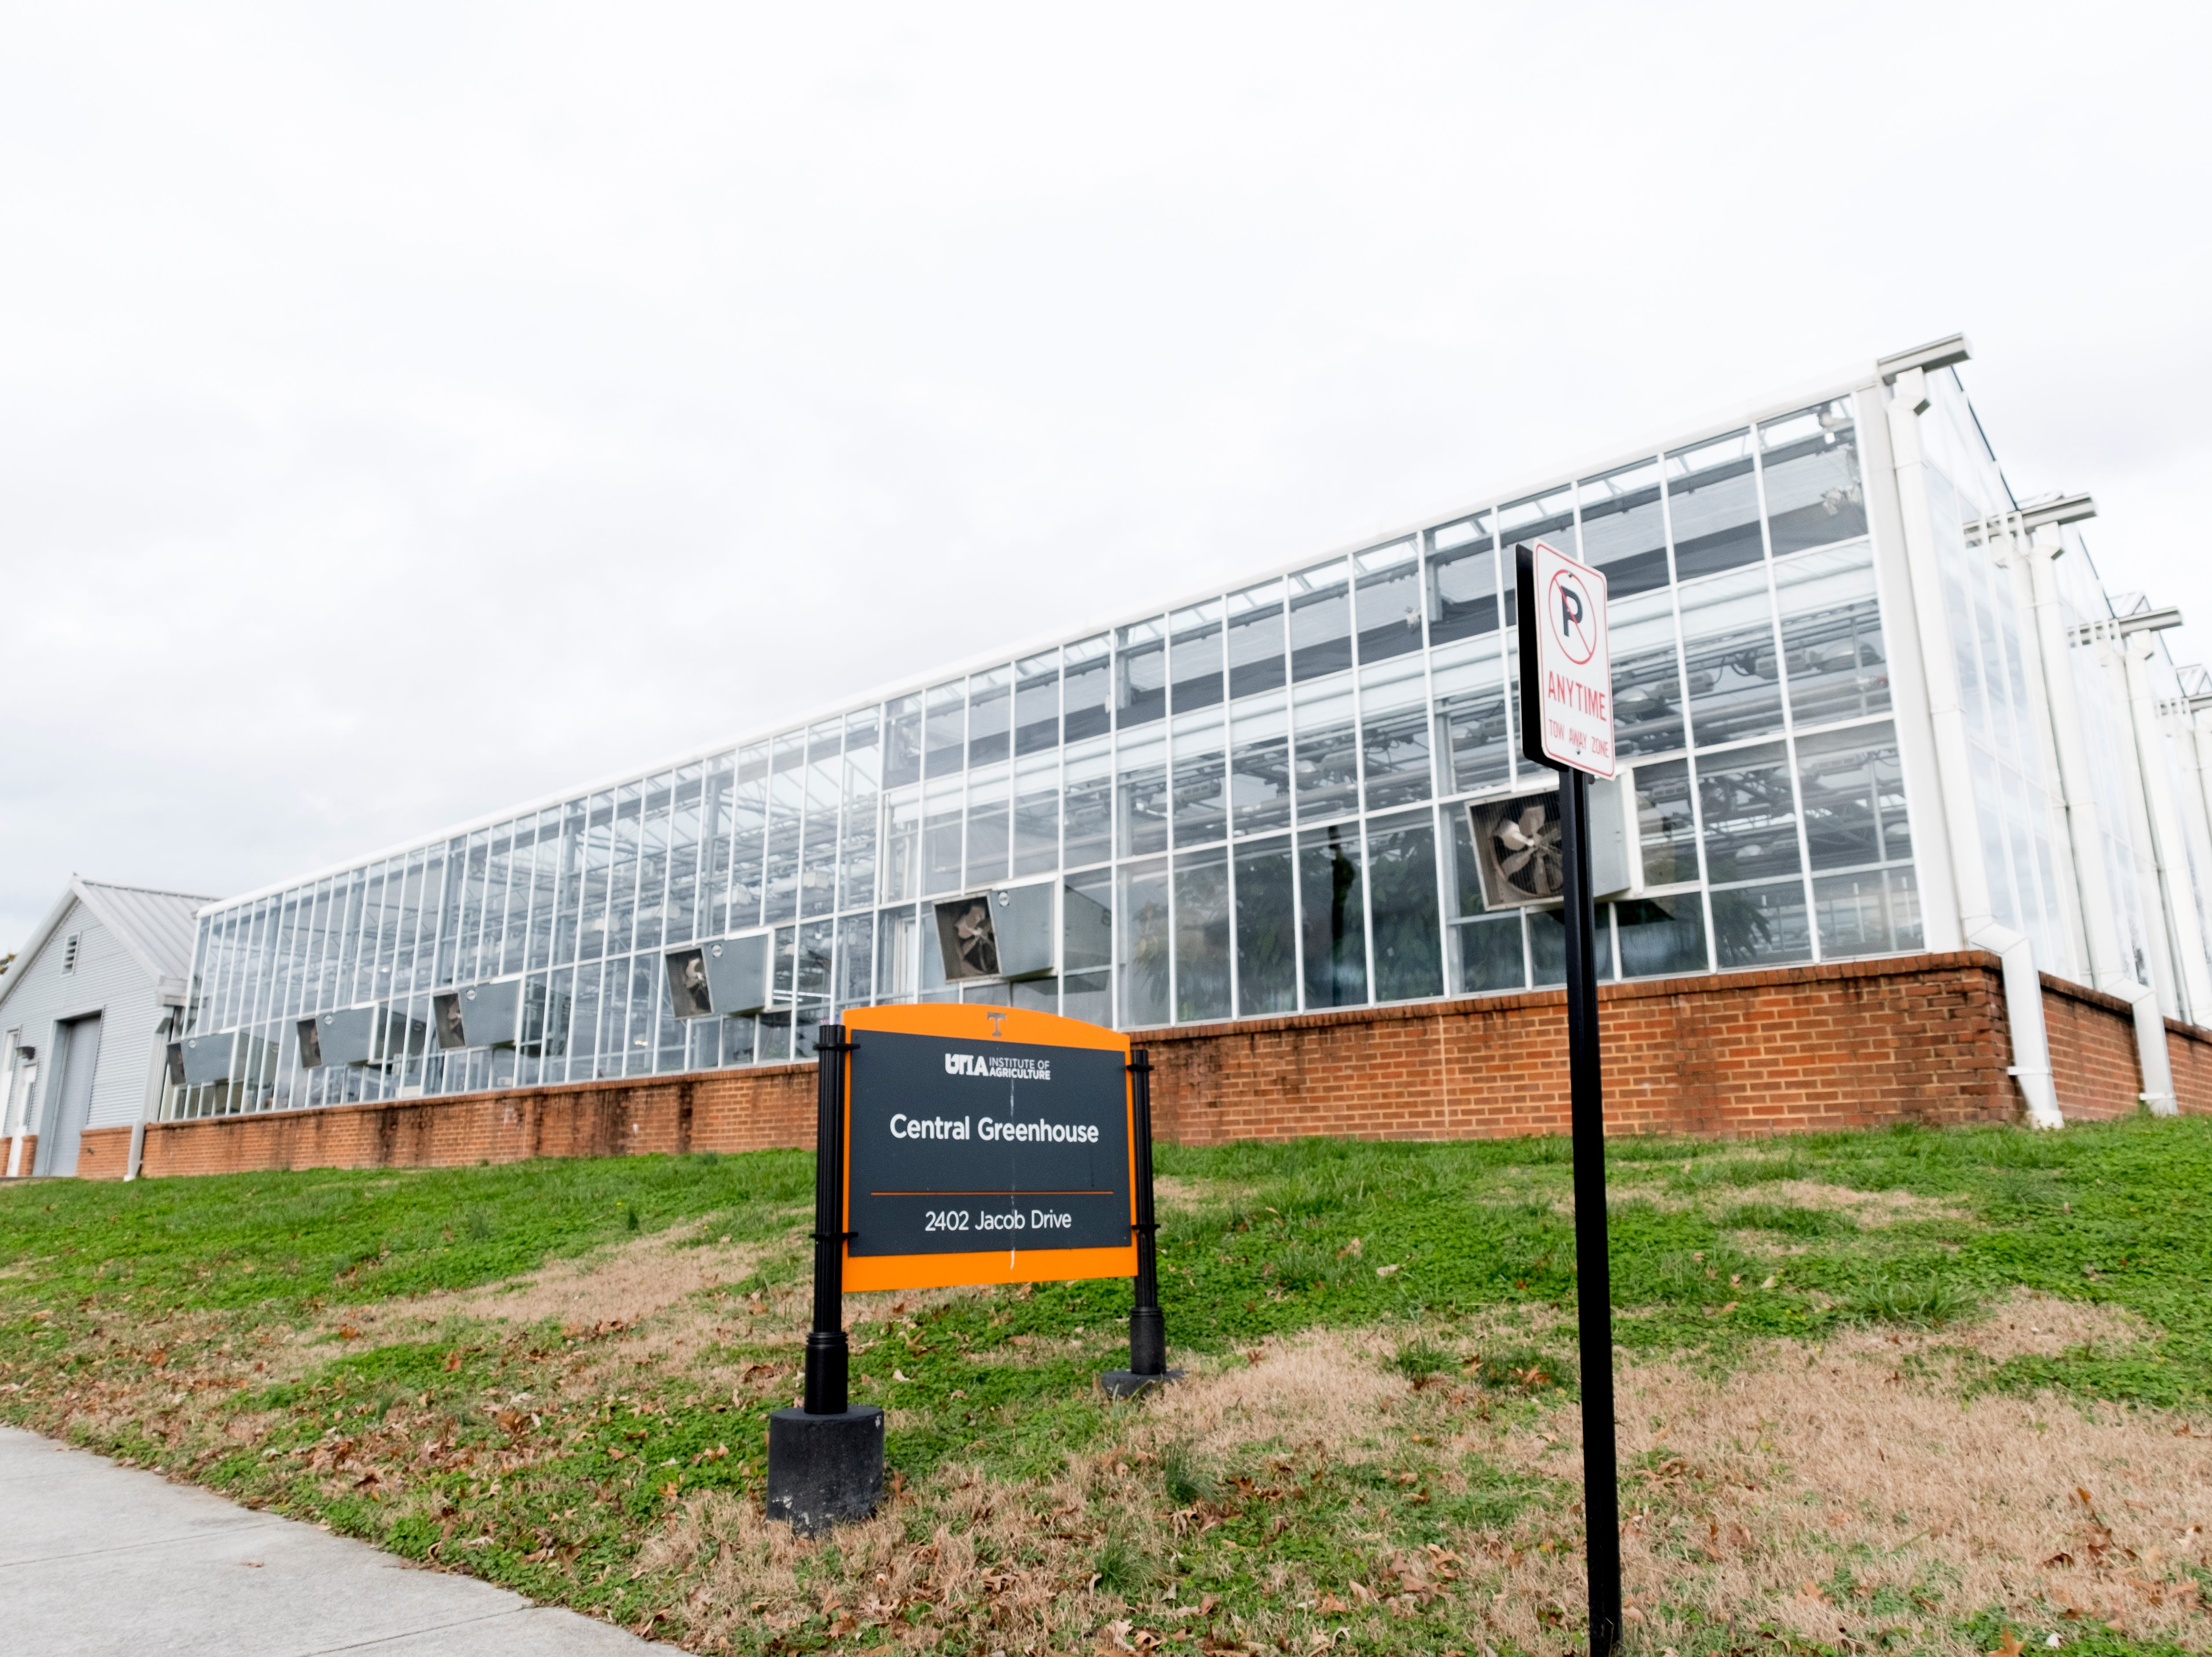 Central Greenhouse on the University of Tennessee campus in Knoxville, Tennessee on Tuesday, January 1, 2019.